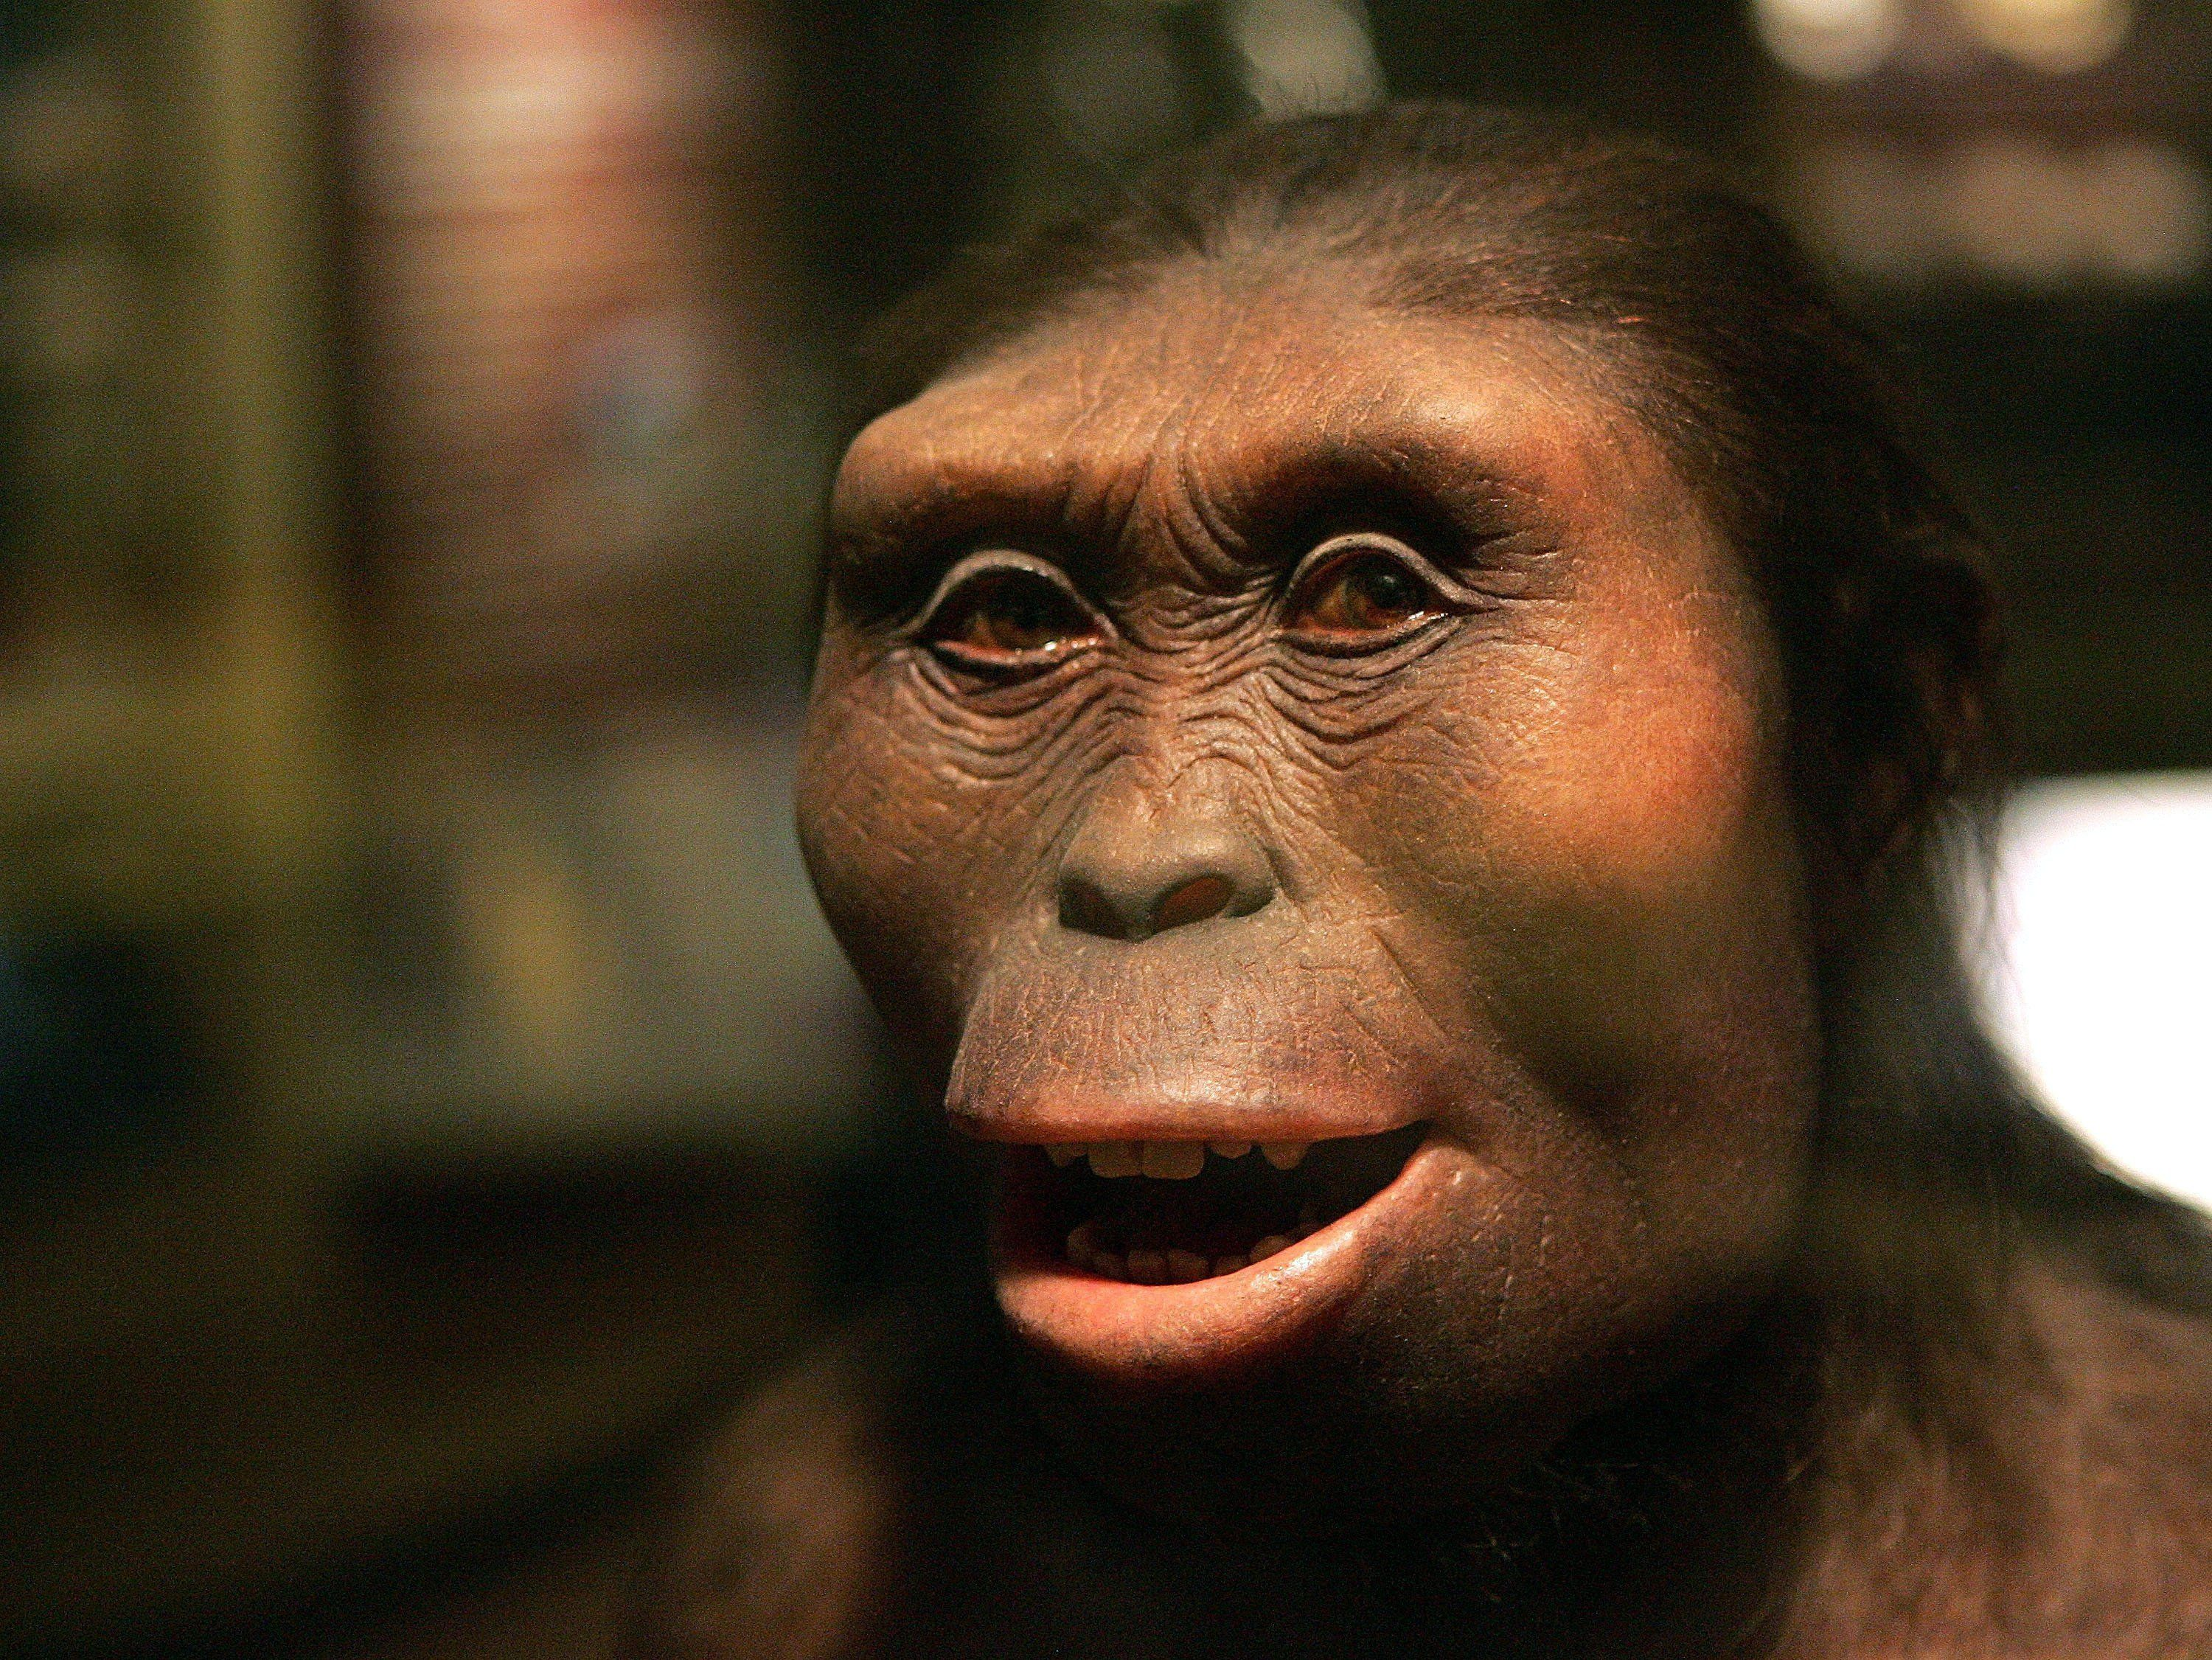 CHICAGO - MARCH 07:  The face of 'Lucy,' an Australopithecus afarensis and part of the 'Evolving Planet' exhibit, is displayed at the Field Museum March 7, 2006 in Chicago, Illinois. The new exhibit, which opens to the public March 10, presents the evolution of life, taking a visitor through a four-billion-year journey.  (Photo by Tim Boyle/Getty Images)